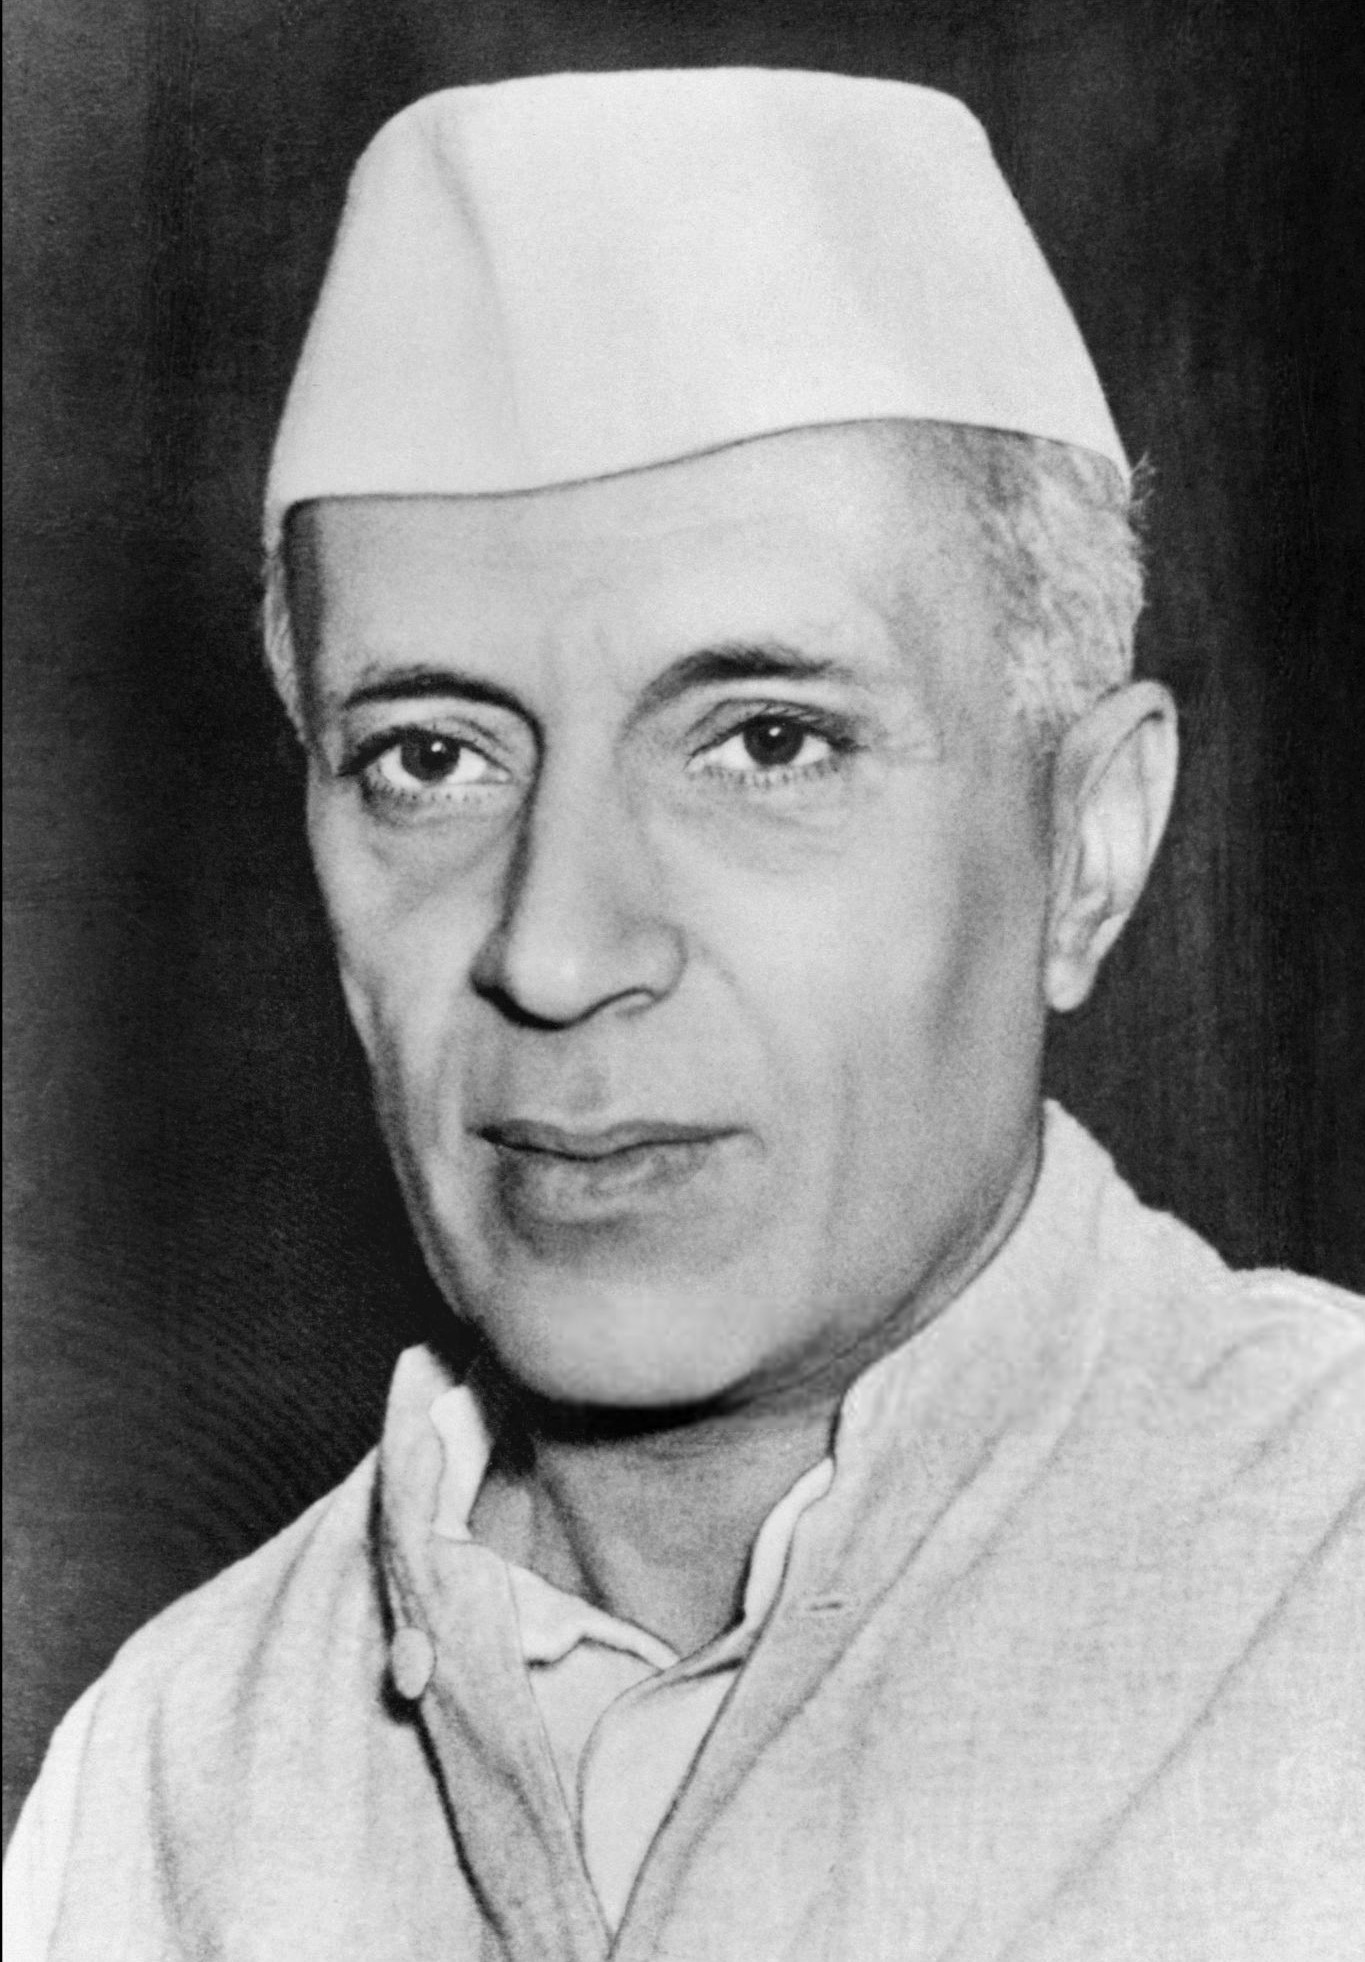 pandit jawaharlal nehru essay in english for kids